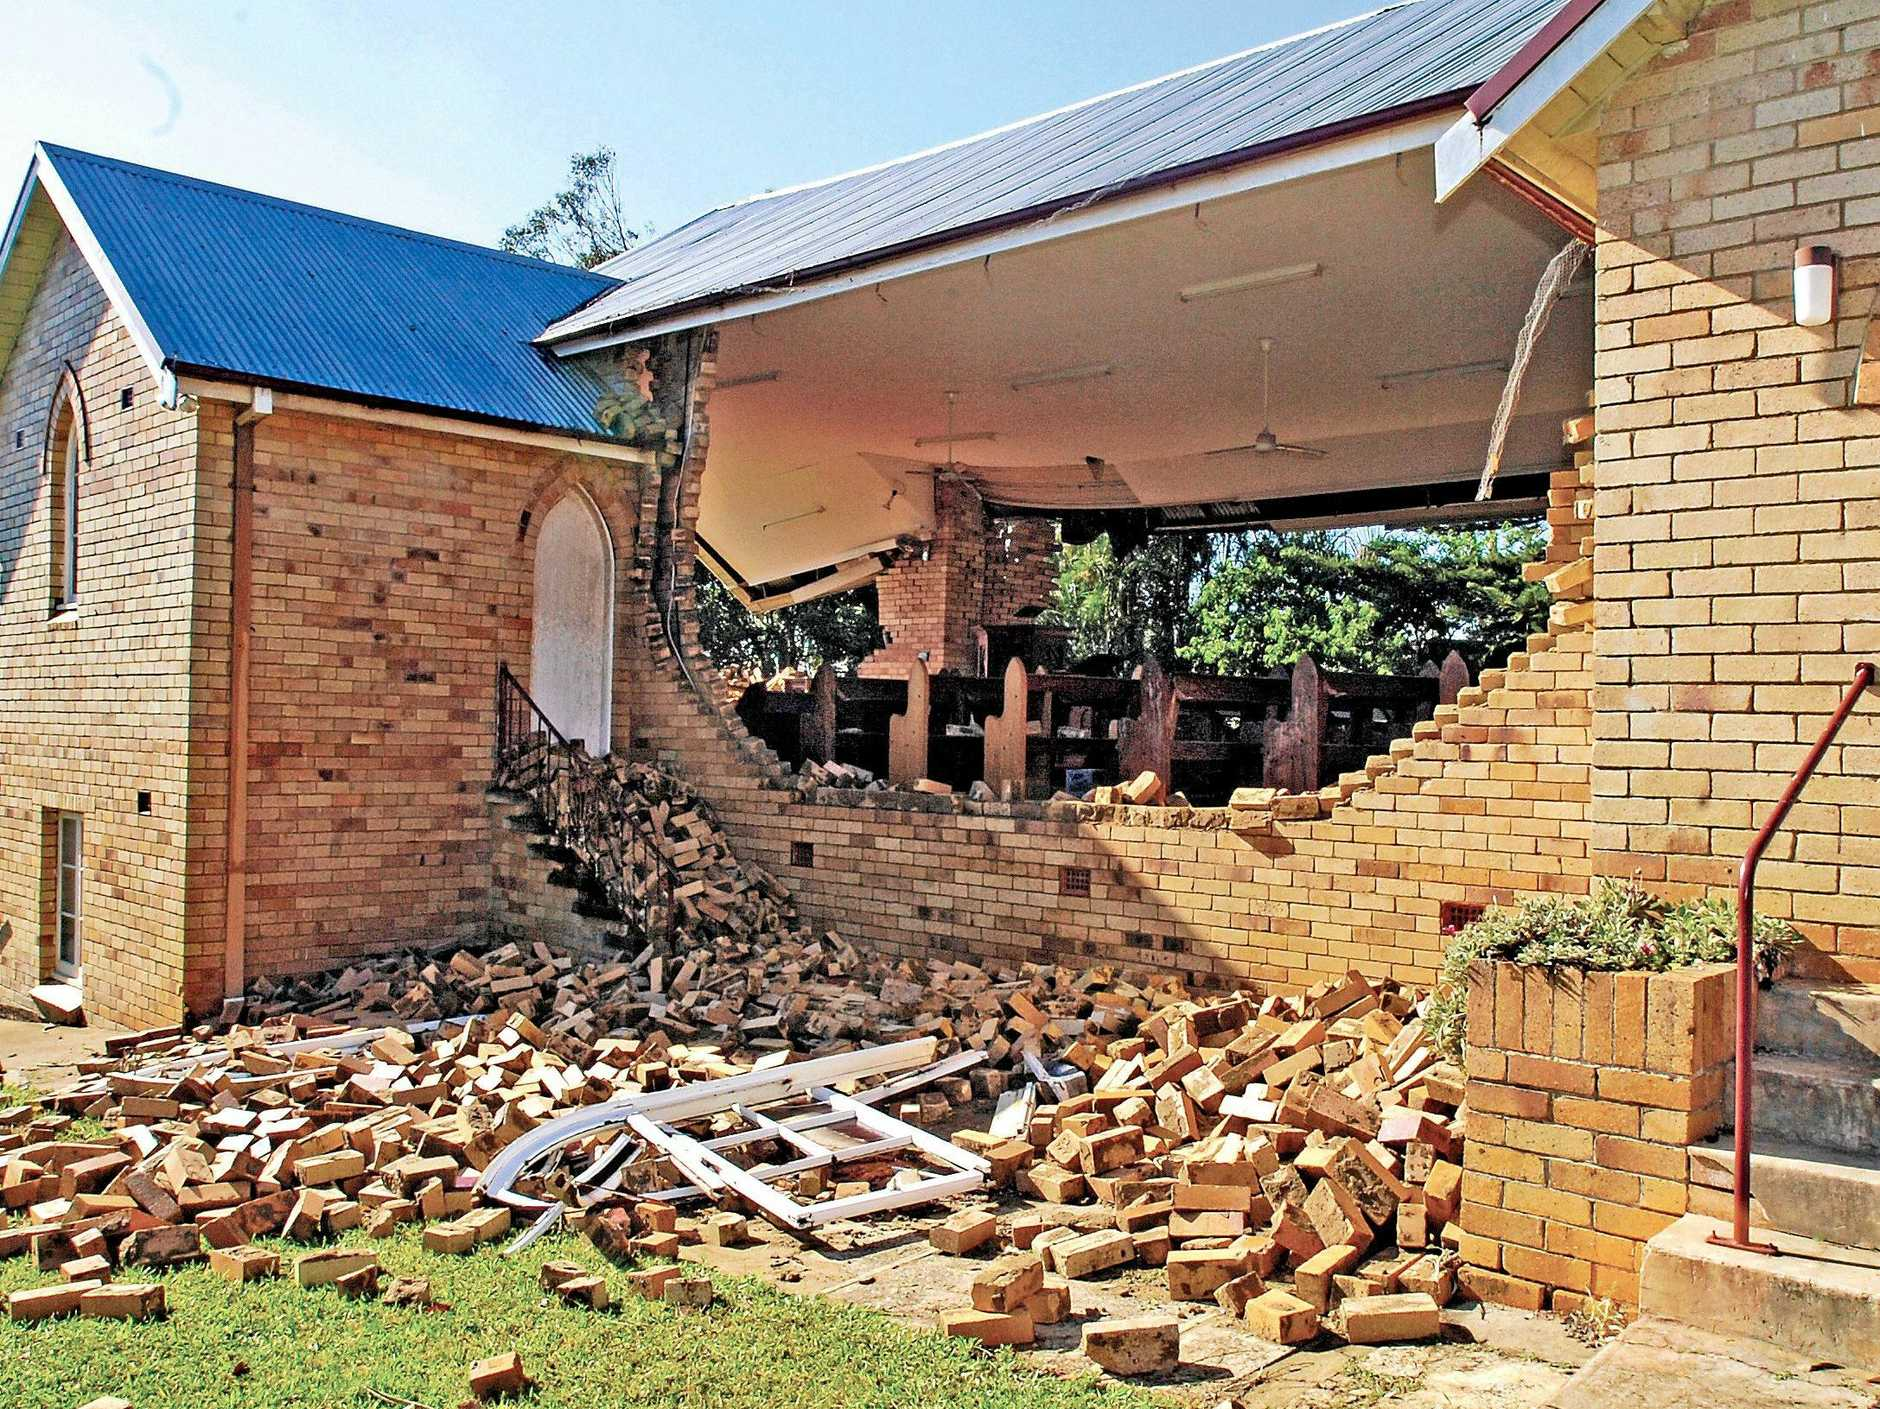 St Matthews Anglican Church in Dunoon had three of it's walls blown out by the tornado.